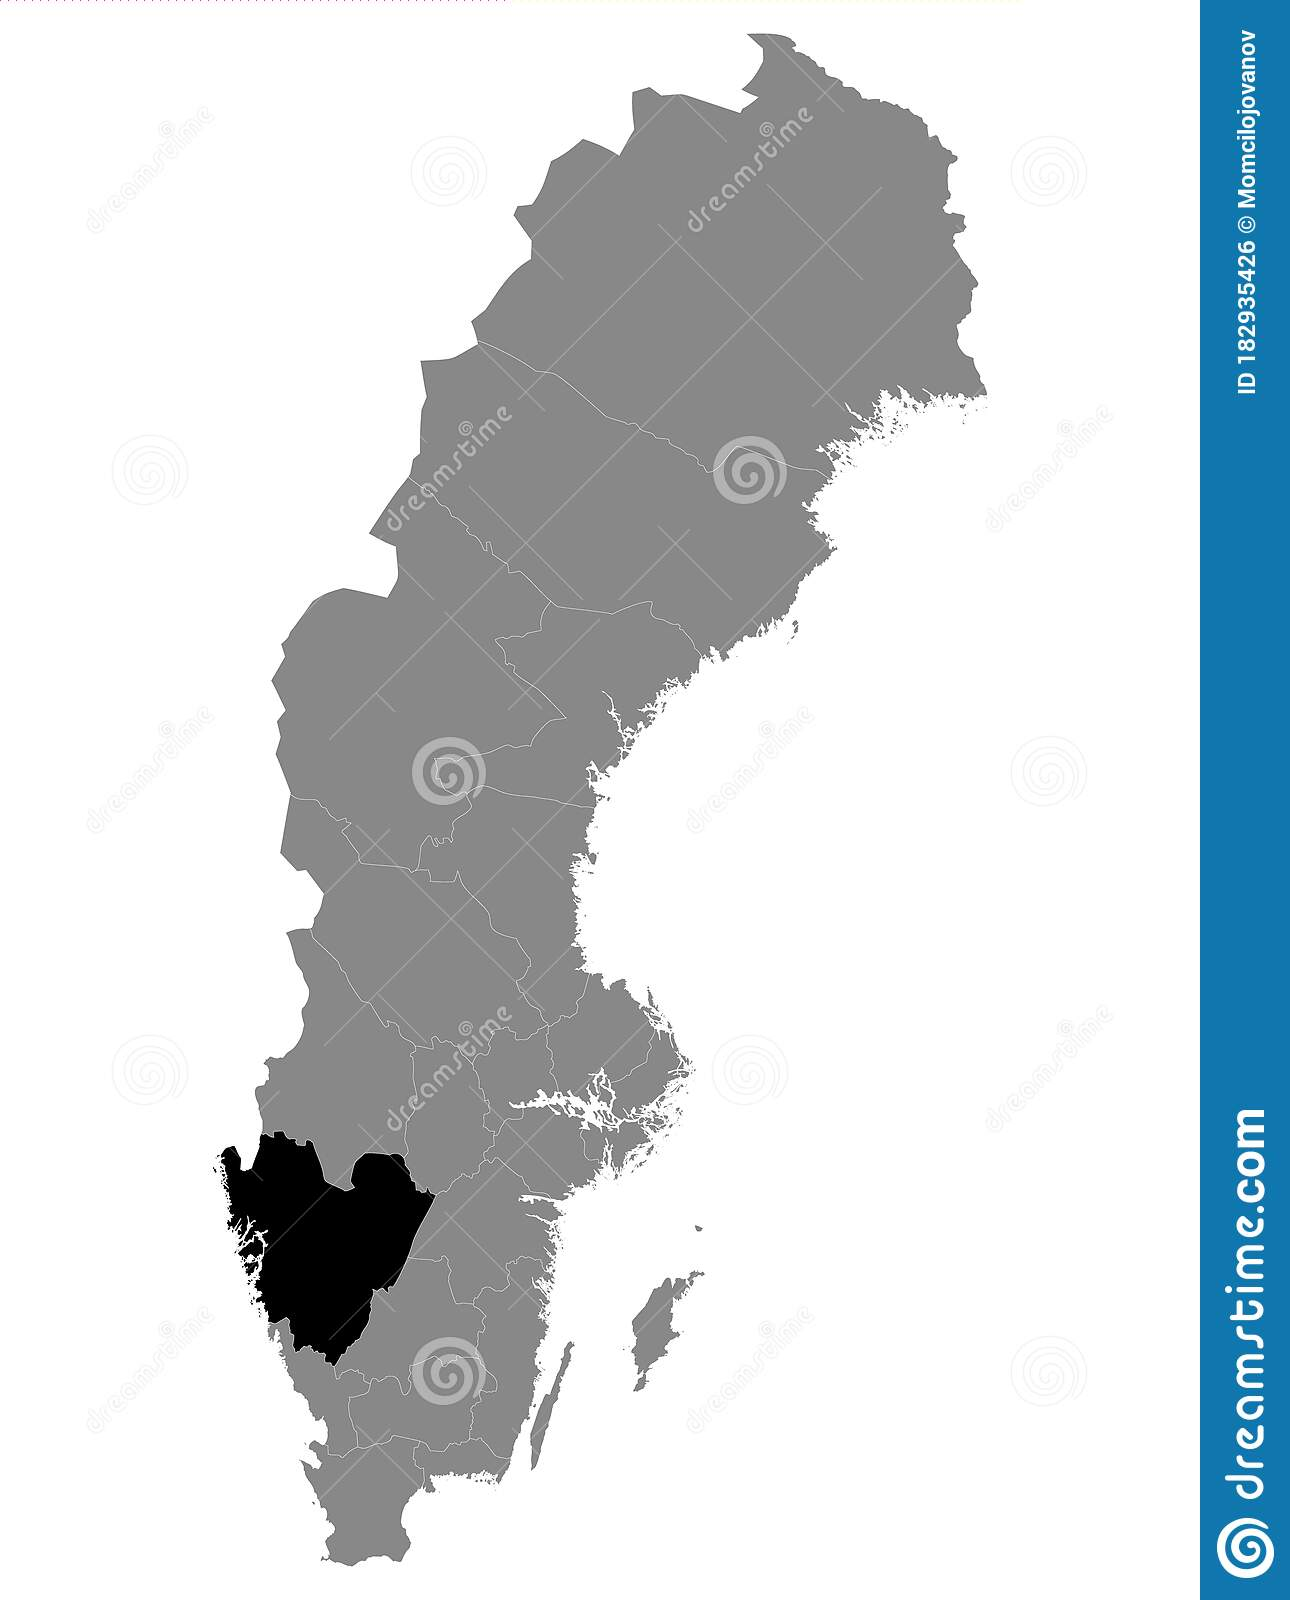 Location Map Of Vastra Gotaland County Stock Vector Illustration Of Scandinavia Sodermanland 182935426